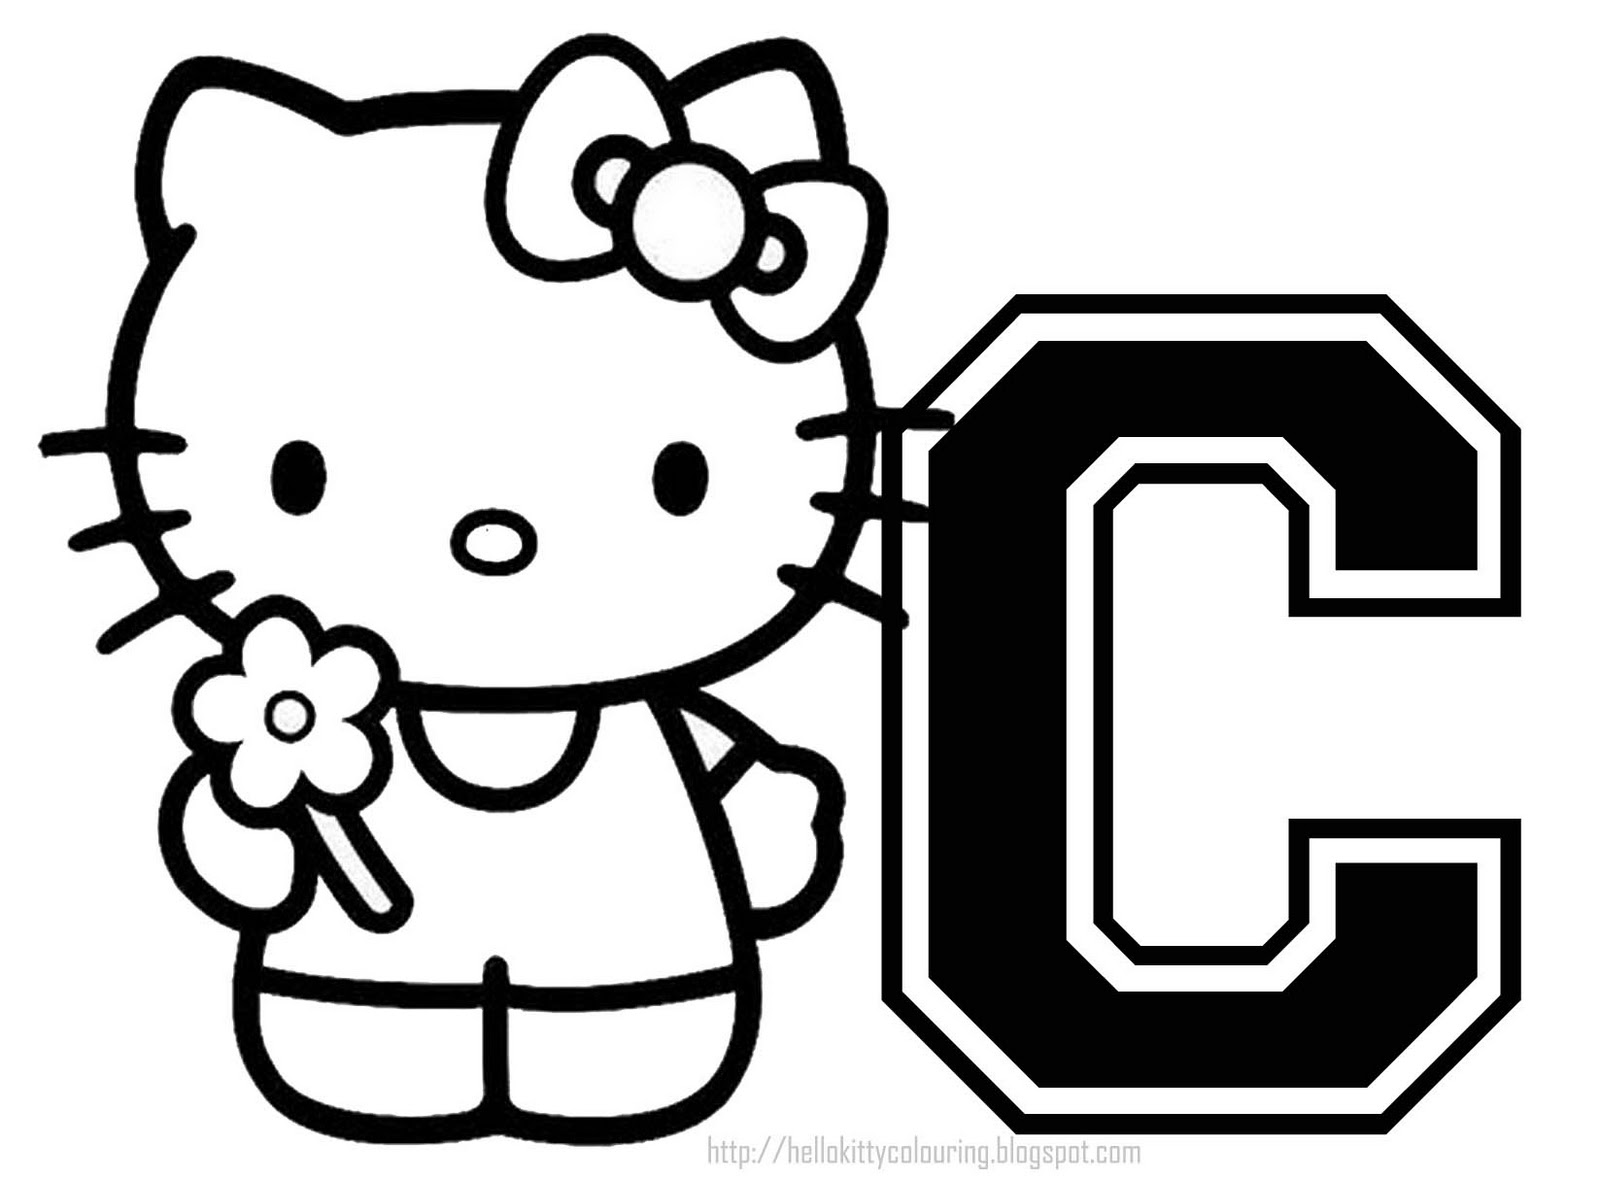 PERSONALIZED COLORING PAGE INITIAL LETTER HELLO KITTY